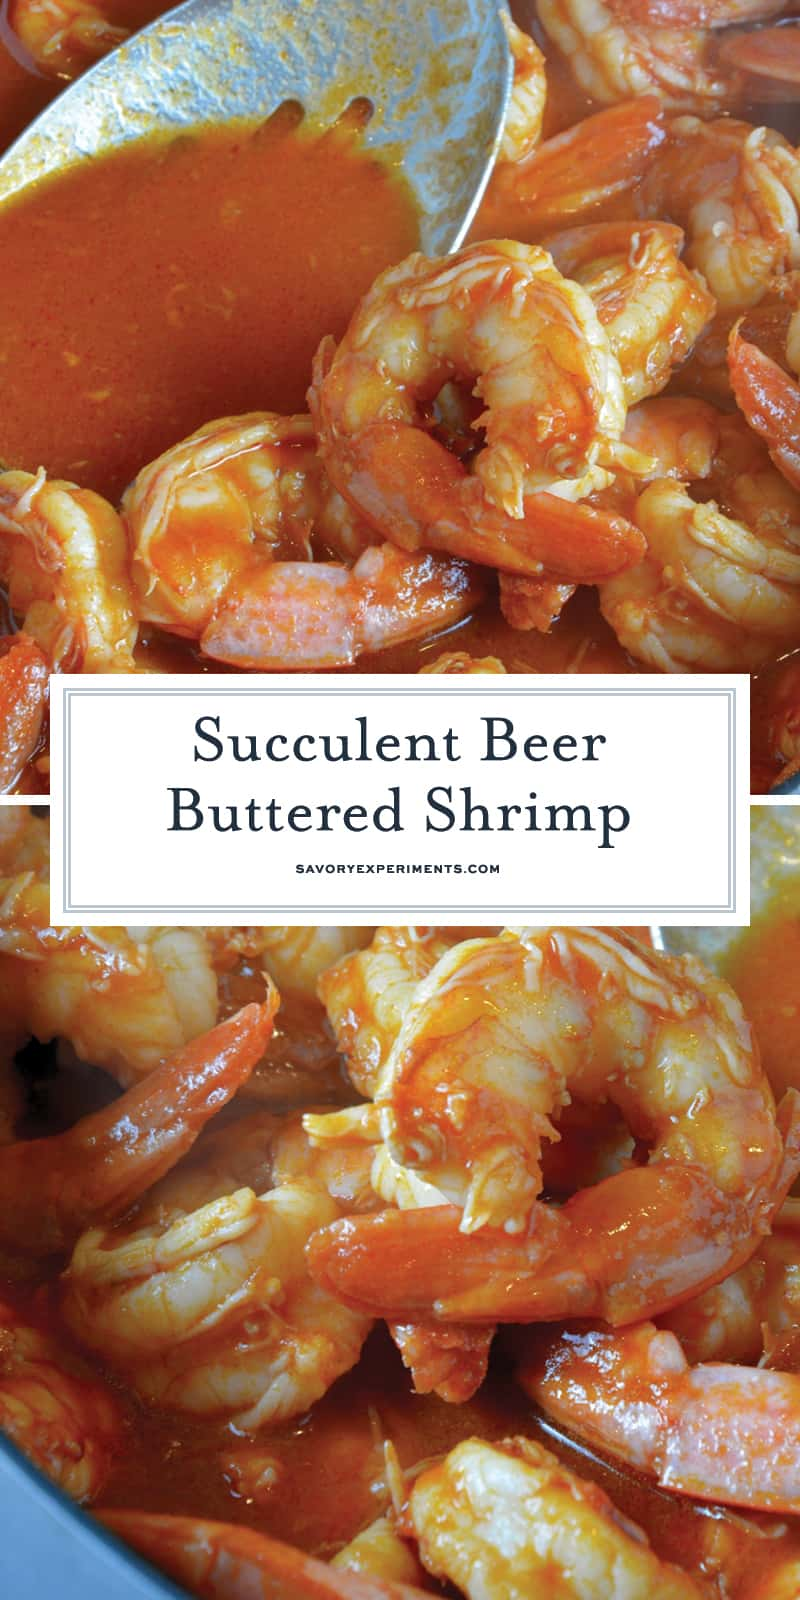 Beer Buttered Shrimp is a tomato based sauce infused with your choice of beer, spices and simmered with shrimp. Serve as an appetizer or over rice as an entree. #butteredshrimprecipe #easyshrimprecipe www.savoryexperiments.com